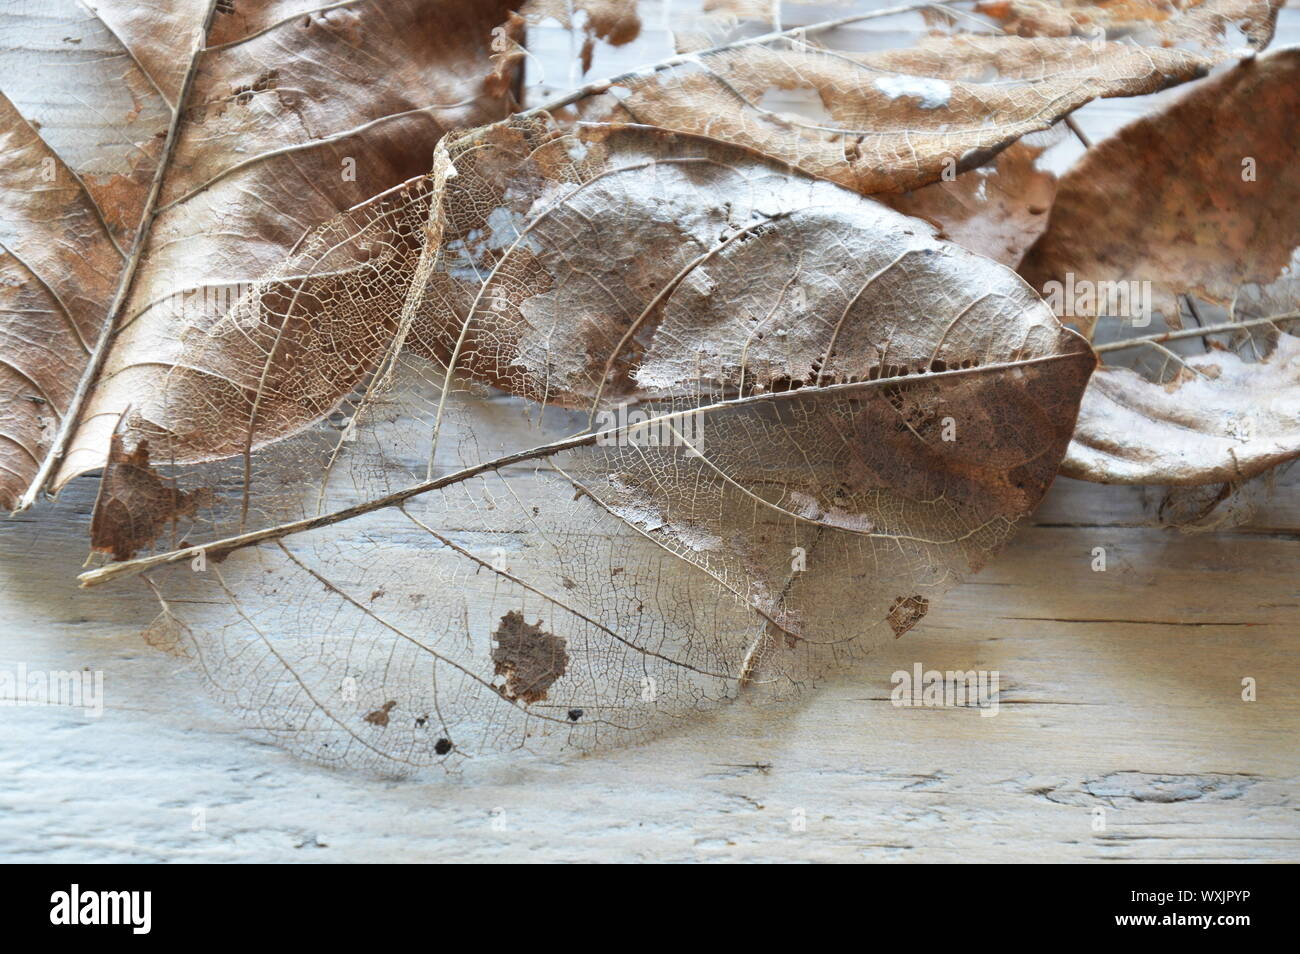 Dry Brown Leaf Decompose Structure On Wooden Board Stock Photo Alamy